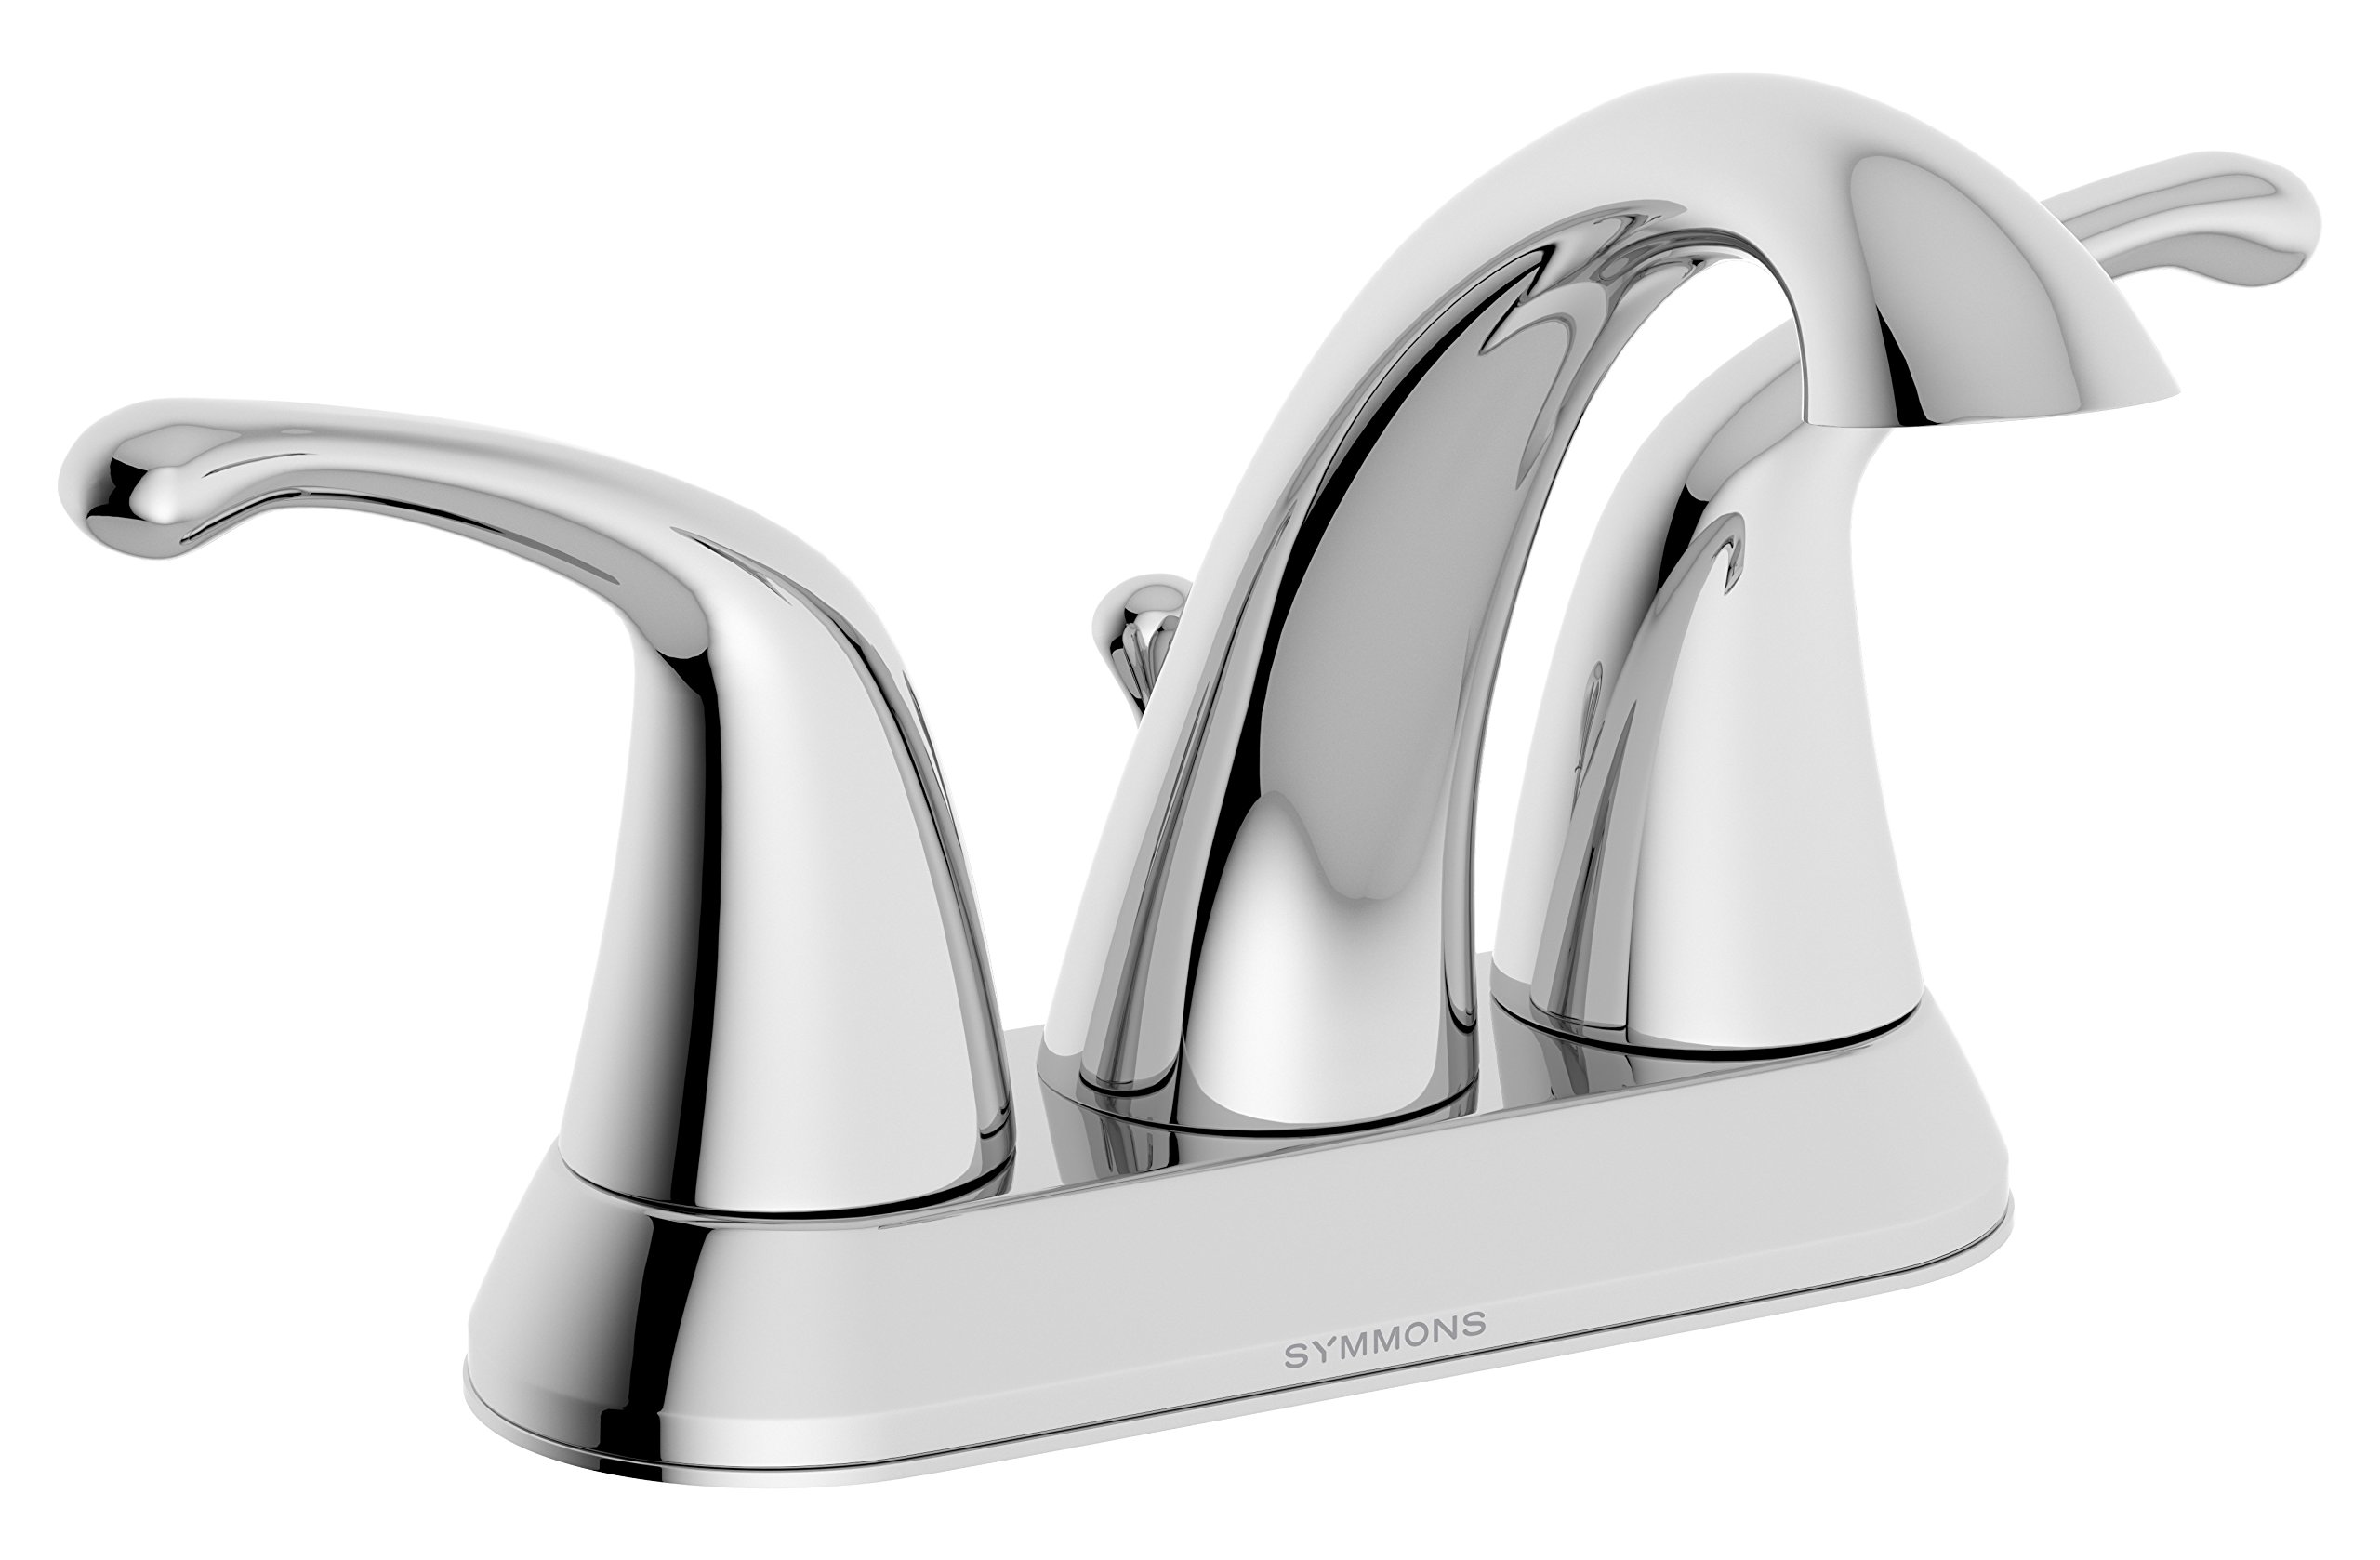 Symmons Unity Two-Handle 4 Inch Centerset Bathroom Faucet with Pop-Up Drain & Lift Rod, Chrome (SLC-6612)